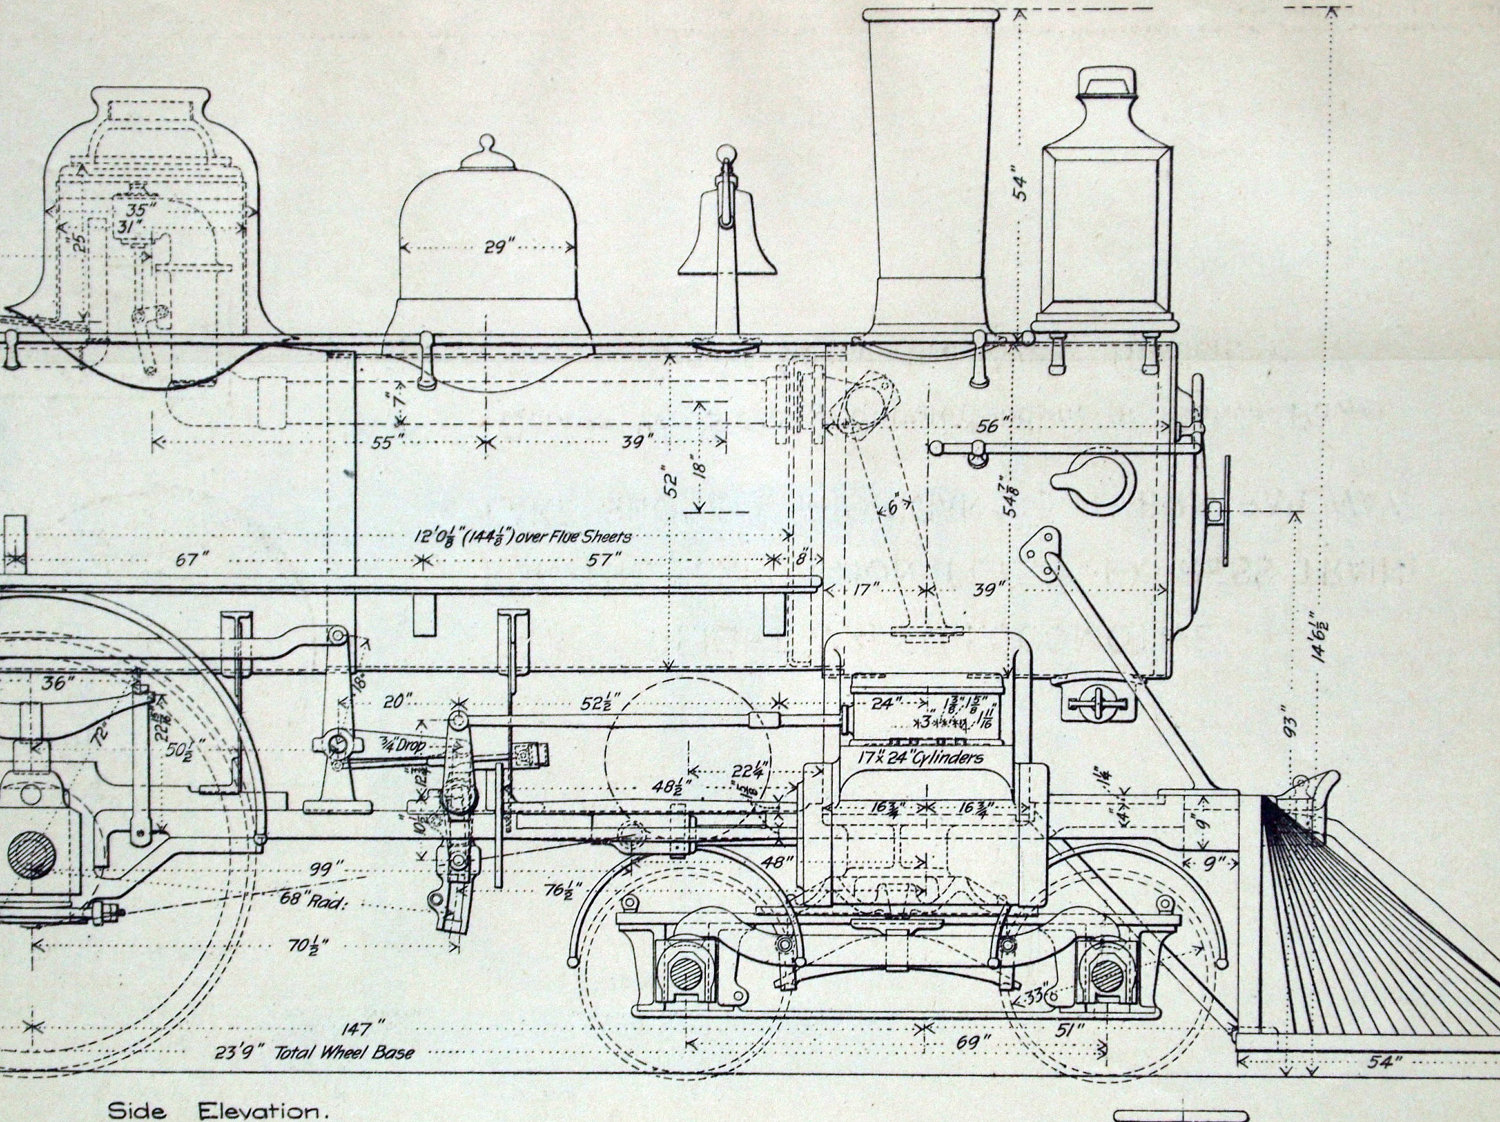 Drawn train technical drawing To Drawings Pinterest Michigan engine